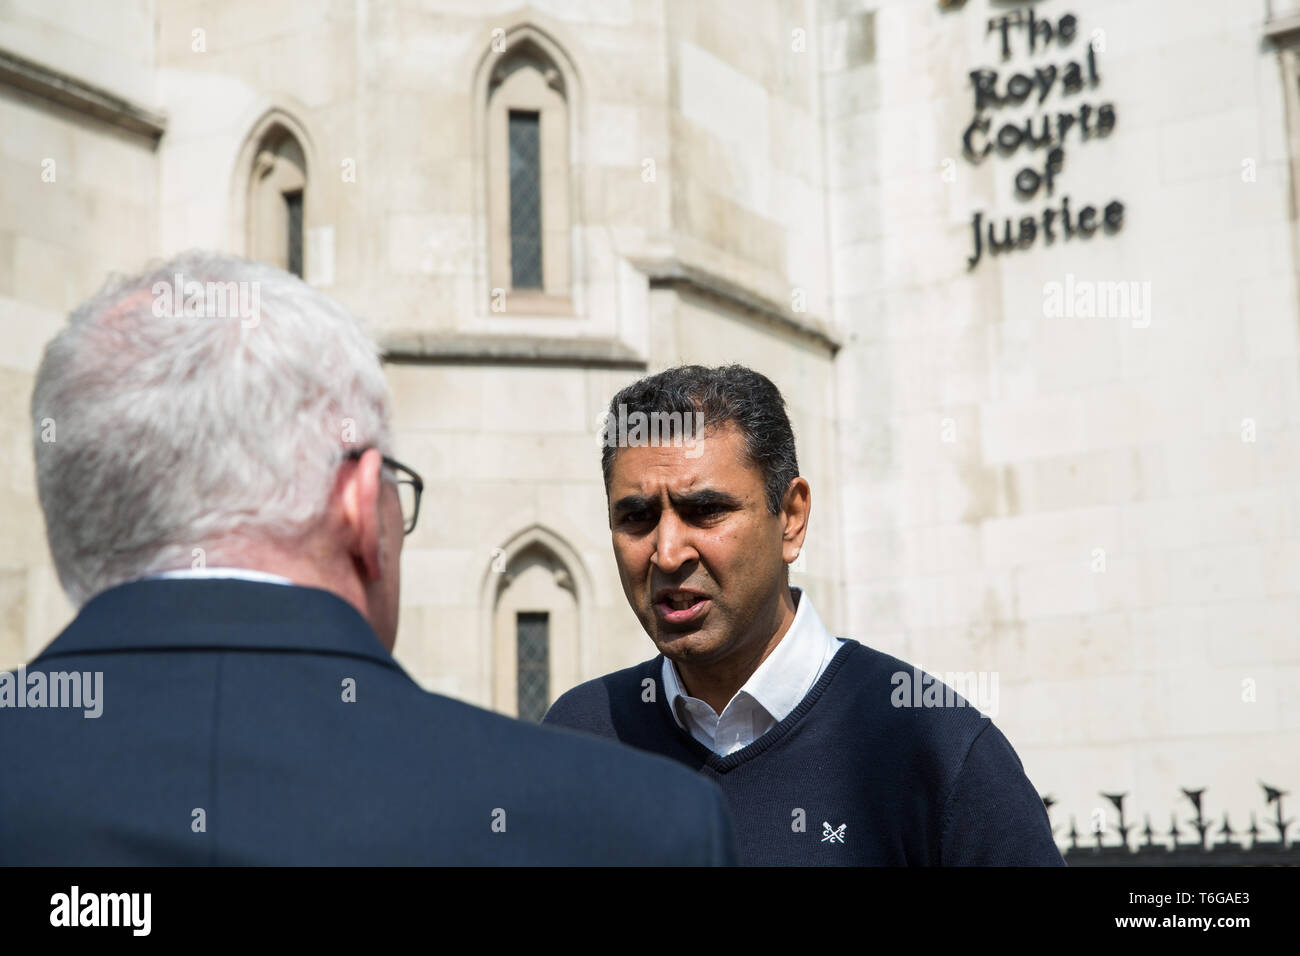 London, UK. 1st May, 2019. Parmjit Dhanda, Executive Director of the Back Heathrow campaign, is interviewed outside the Royal Courts of Justice after the failure of a High Court challenge to the controversial plans to build a third runway at Heathrow airport. Judicial reviews of the Government's decision to approve the plans had been brought by five councils, residents, environmental charities including Greenpeace, Friends of the Earth and Plan B and London Mayor Sadiq Khan. Credit: Mark Kerrison/Alamy Live News - Stock Image